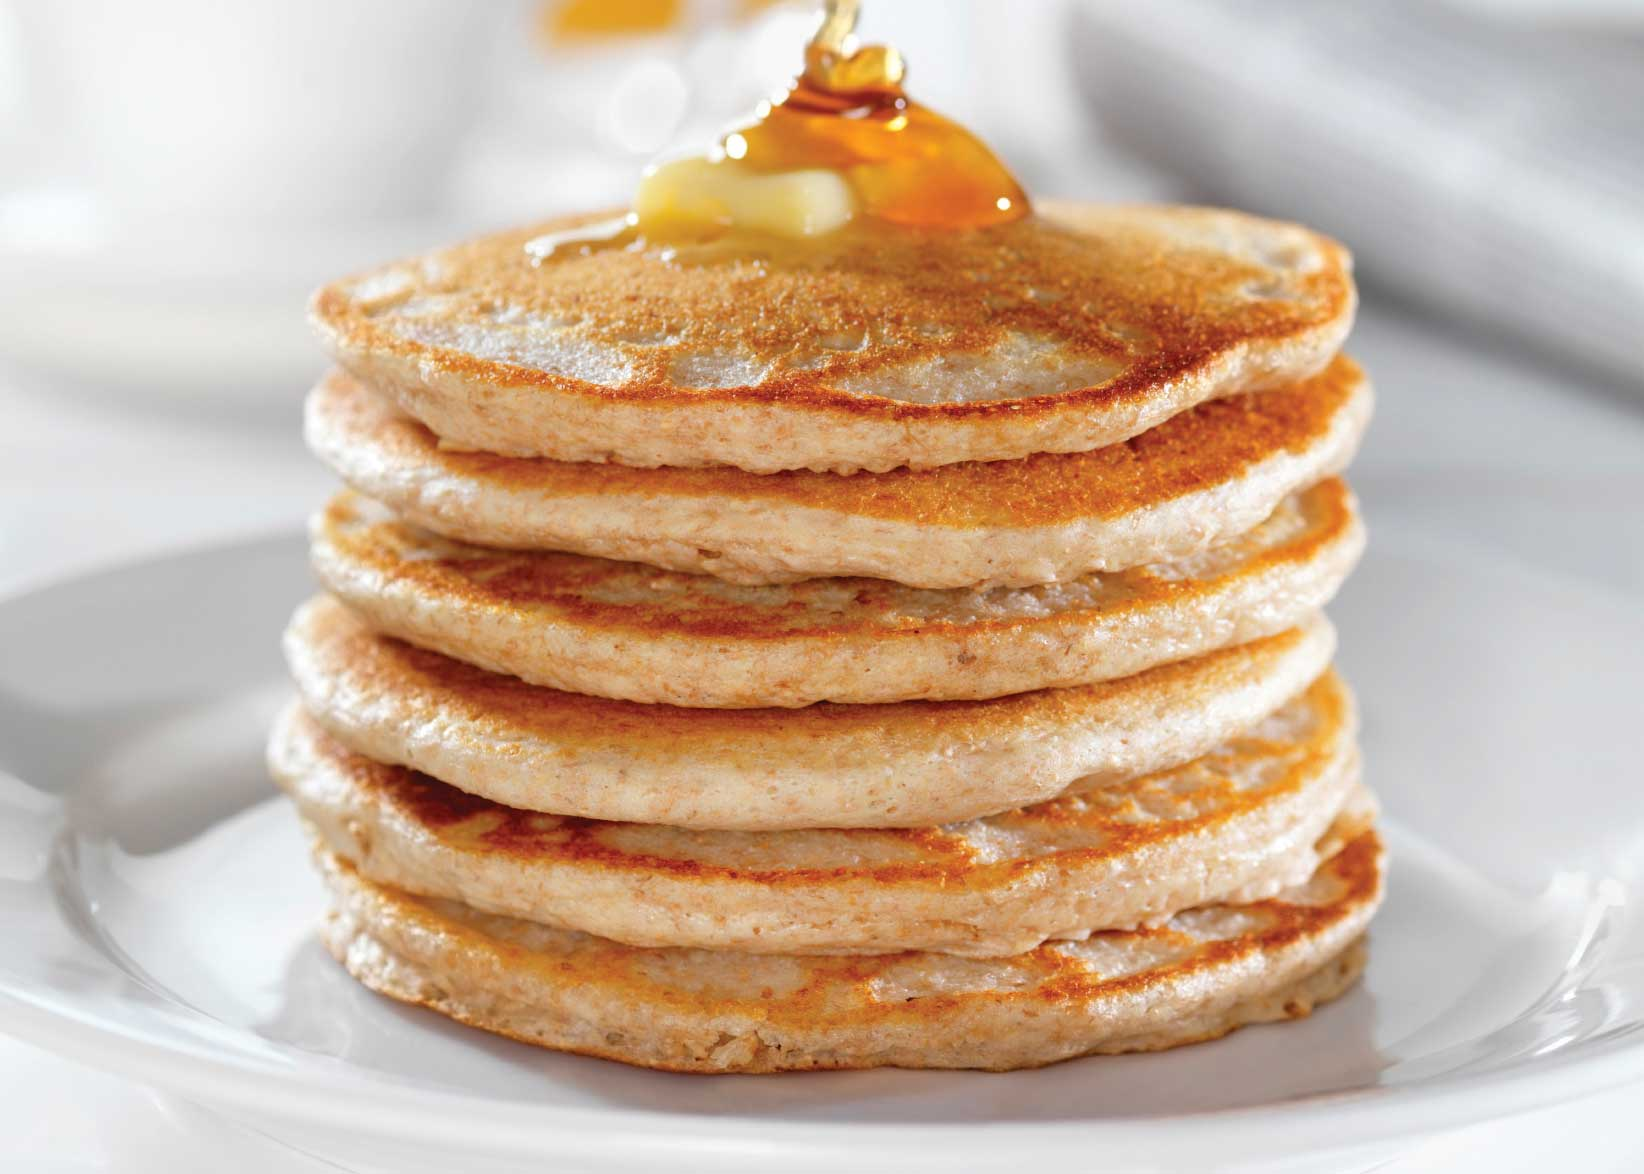 Stack Of Pancakes Png HD Wallpaper Back 166998   PNG Images   PNGio 1644x1174